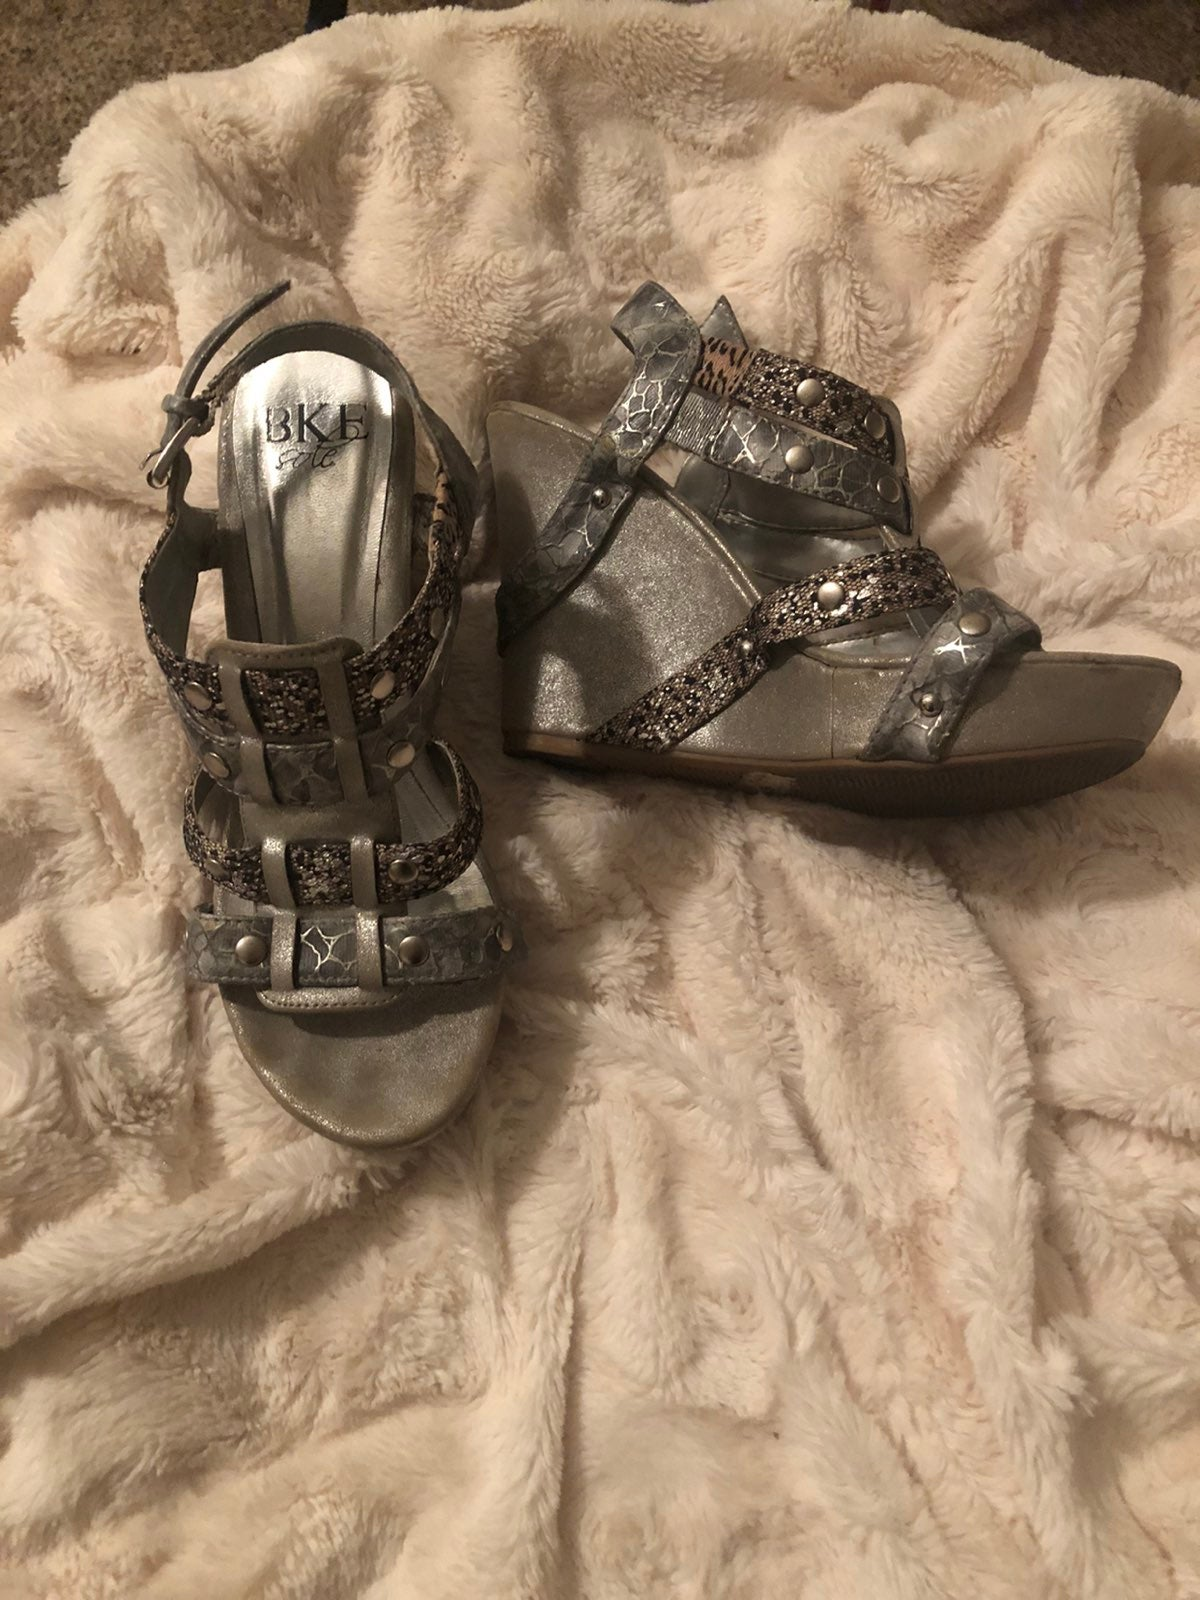 BKE wedge sandals. Silver/black sz 6